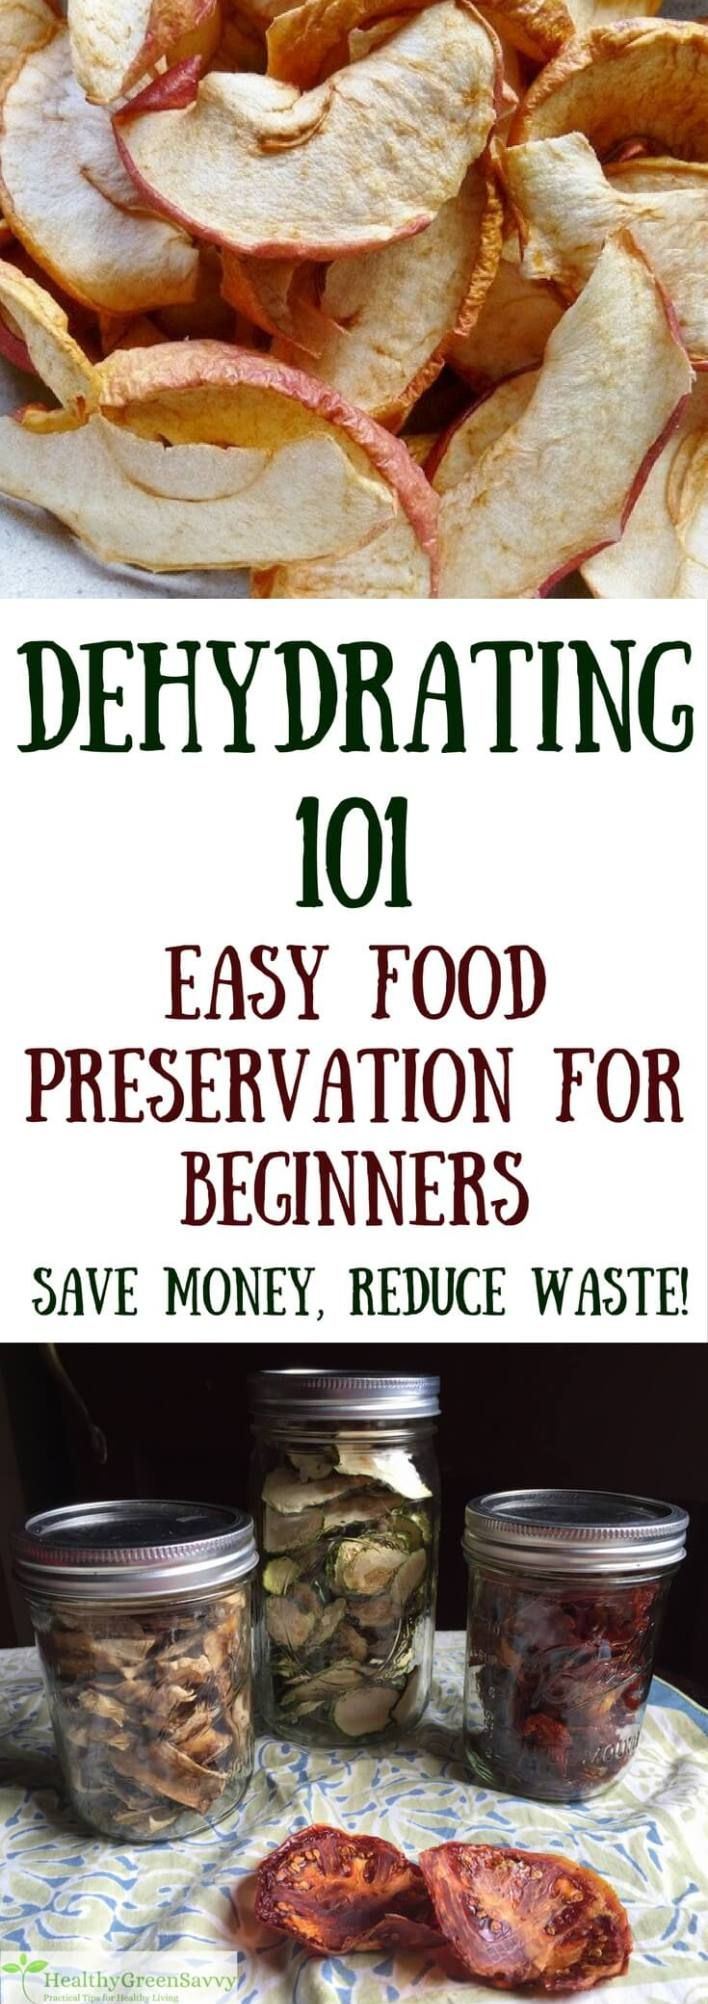 Dehydrating food is easy, economical, and lets you enjoy the bounties of your summer garden all year round! Never tried dehydrating food before? Here's what you need to know to get started. | dehydrating food for beginners | easy food preservation | green living tips | how to dehydrate food |